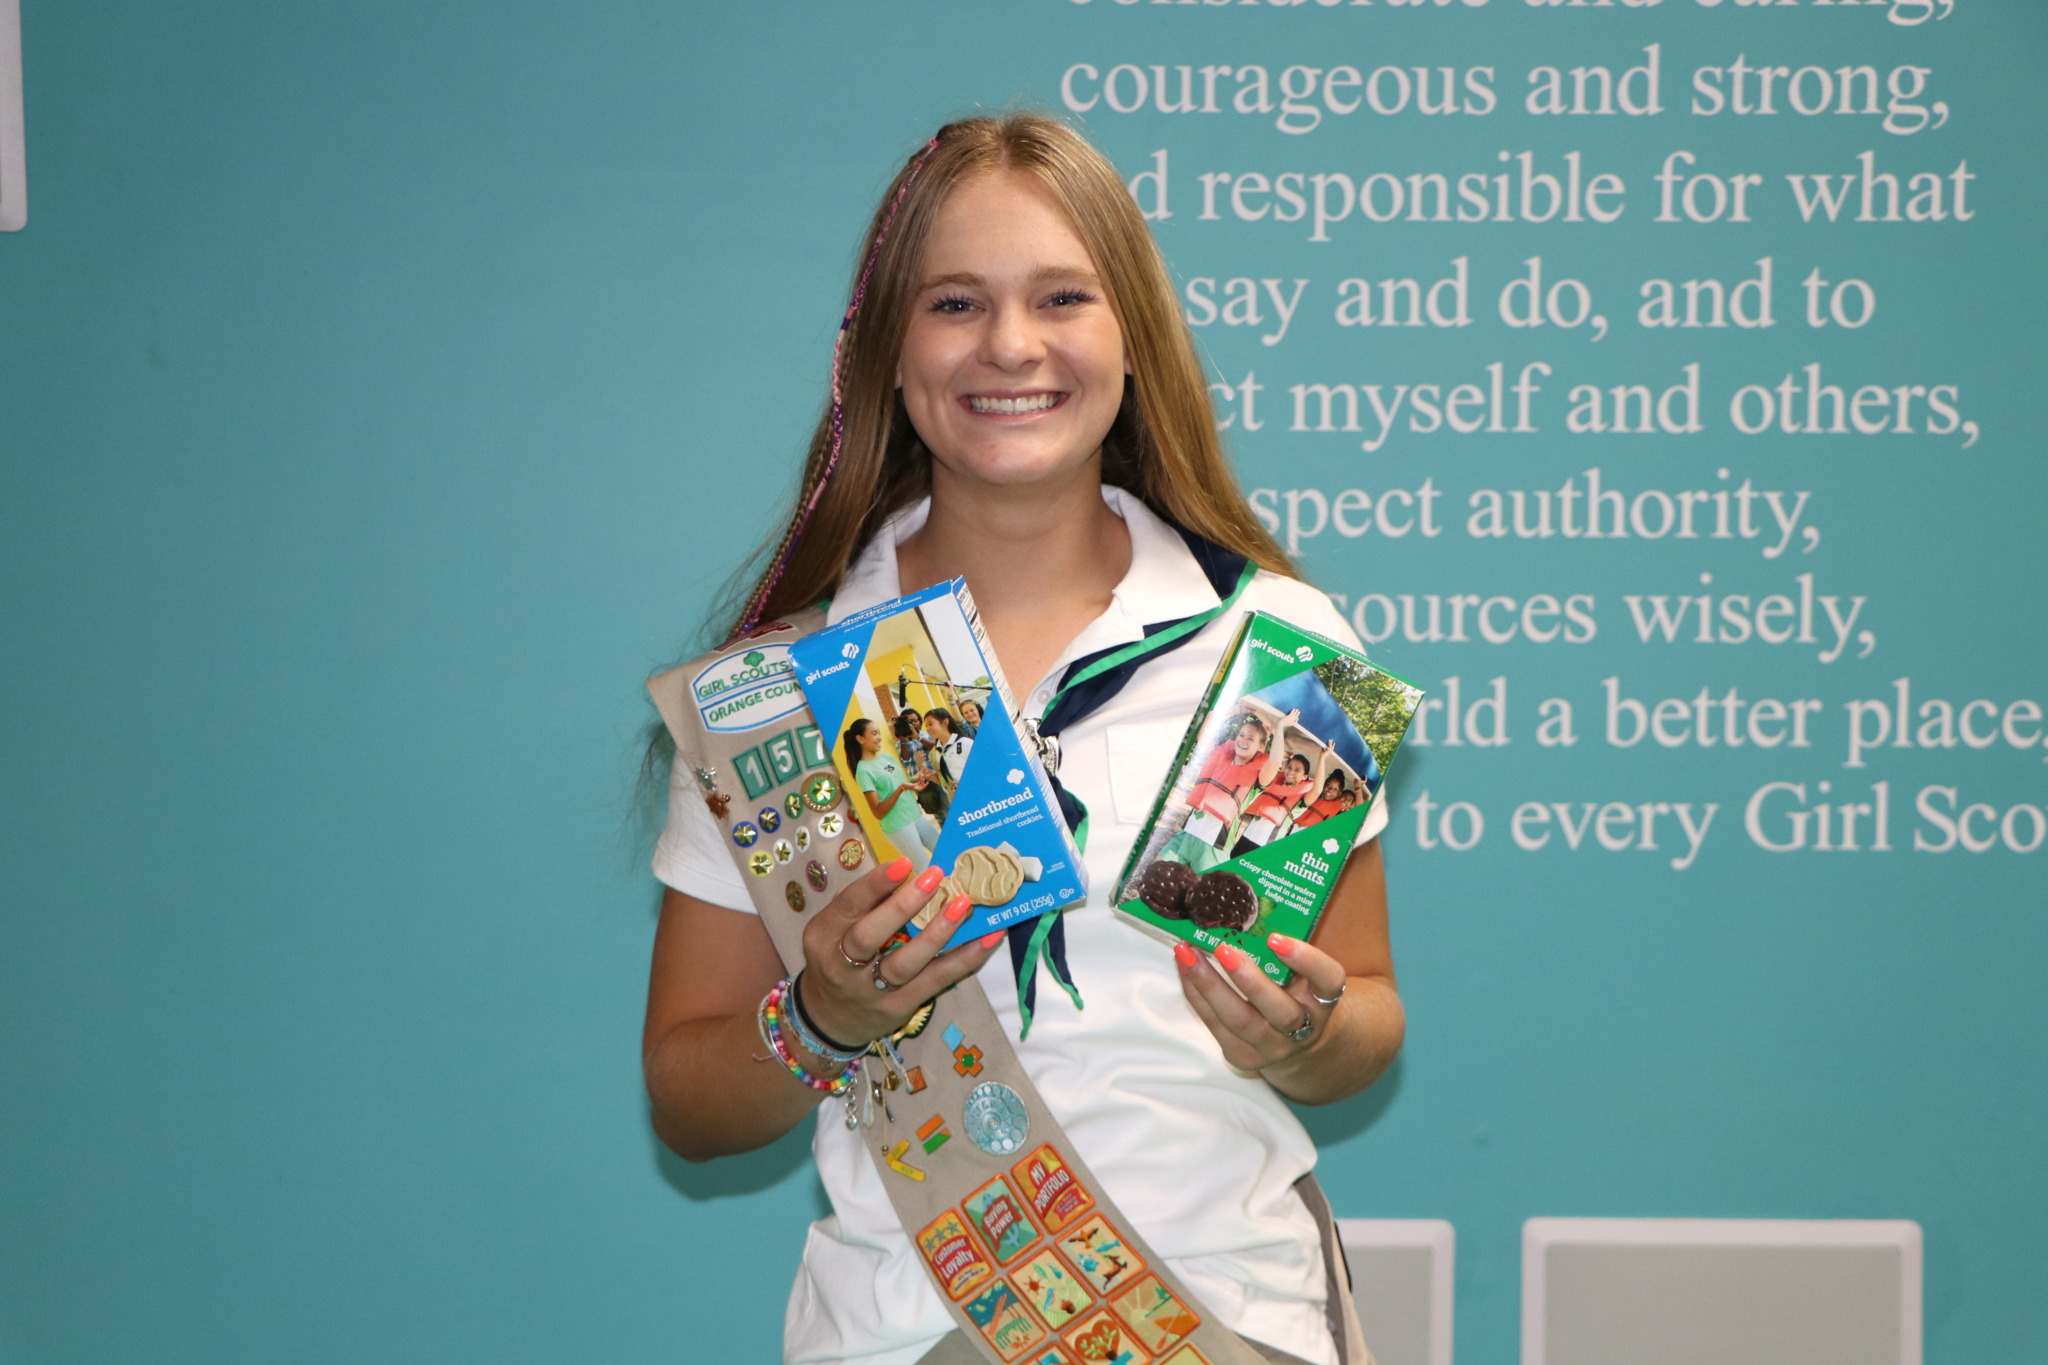 Orange County Girl Scout Ambassador, Trinity Brewer